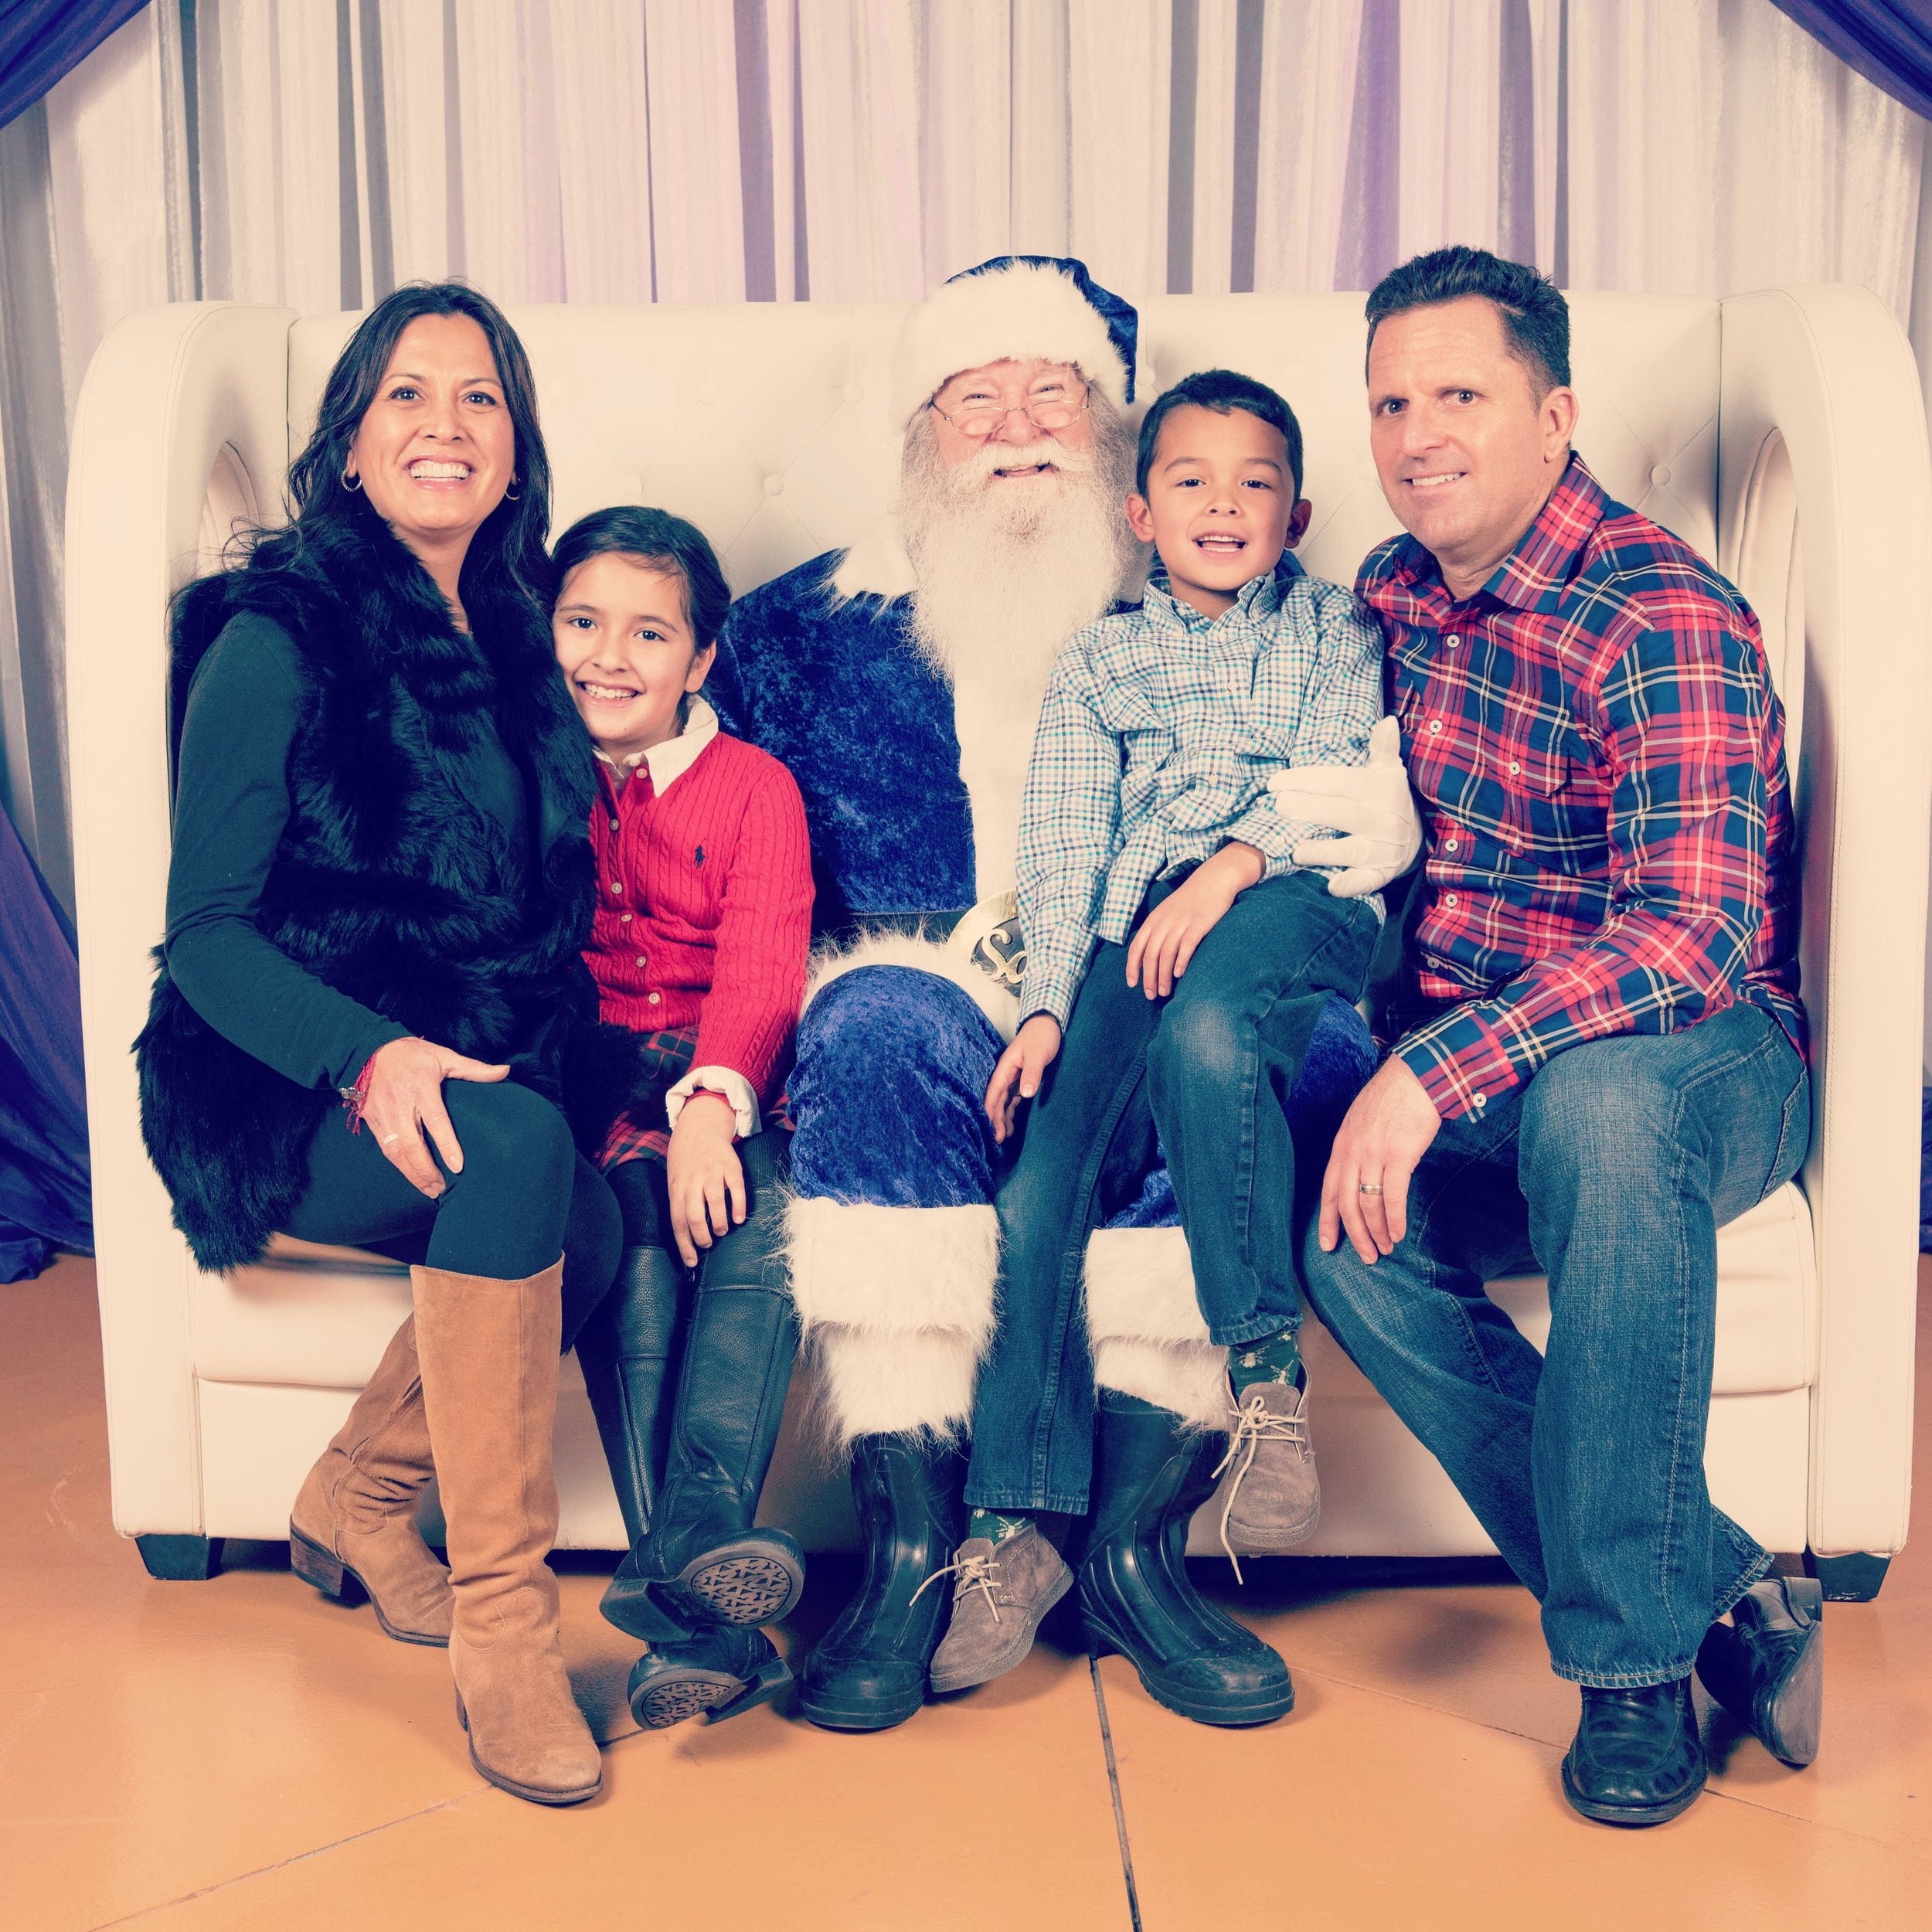 Instagram Message: Happy Holidays from The Patons and the Viking guy with a beard.